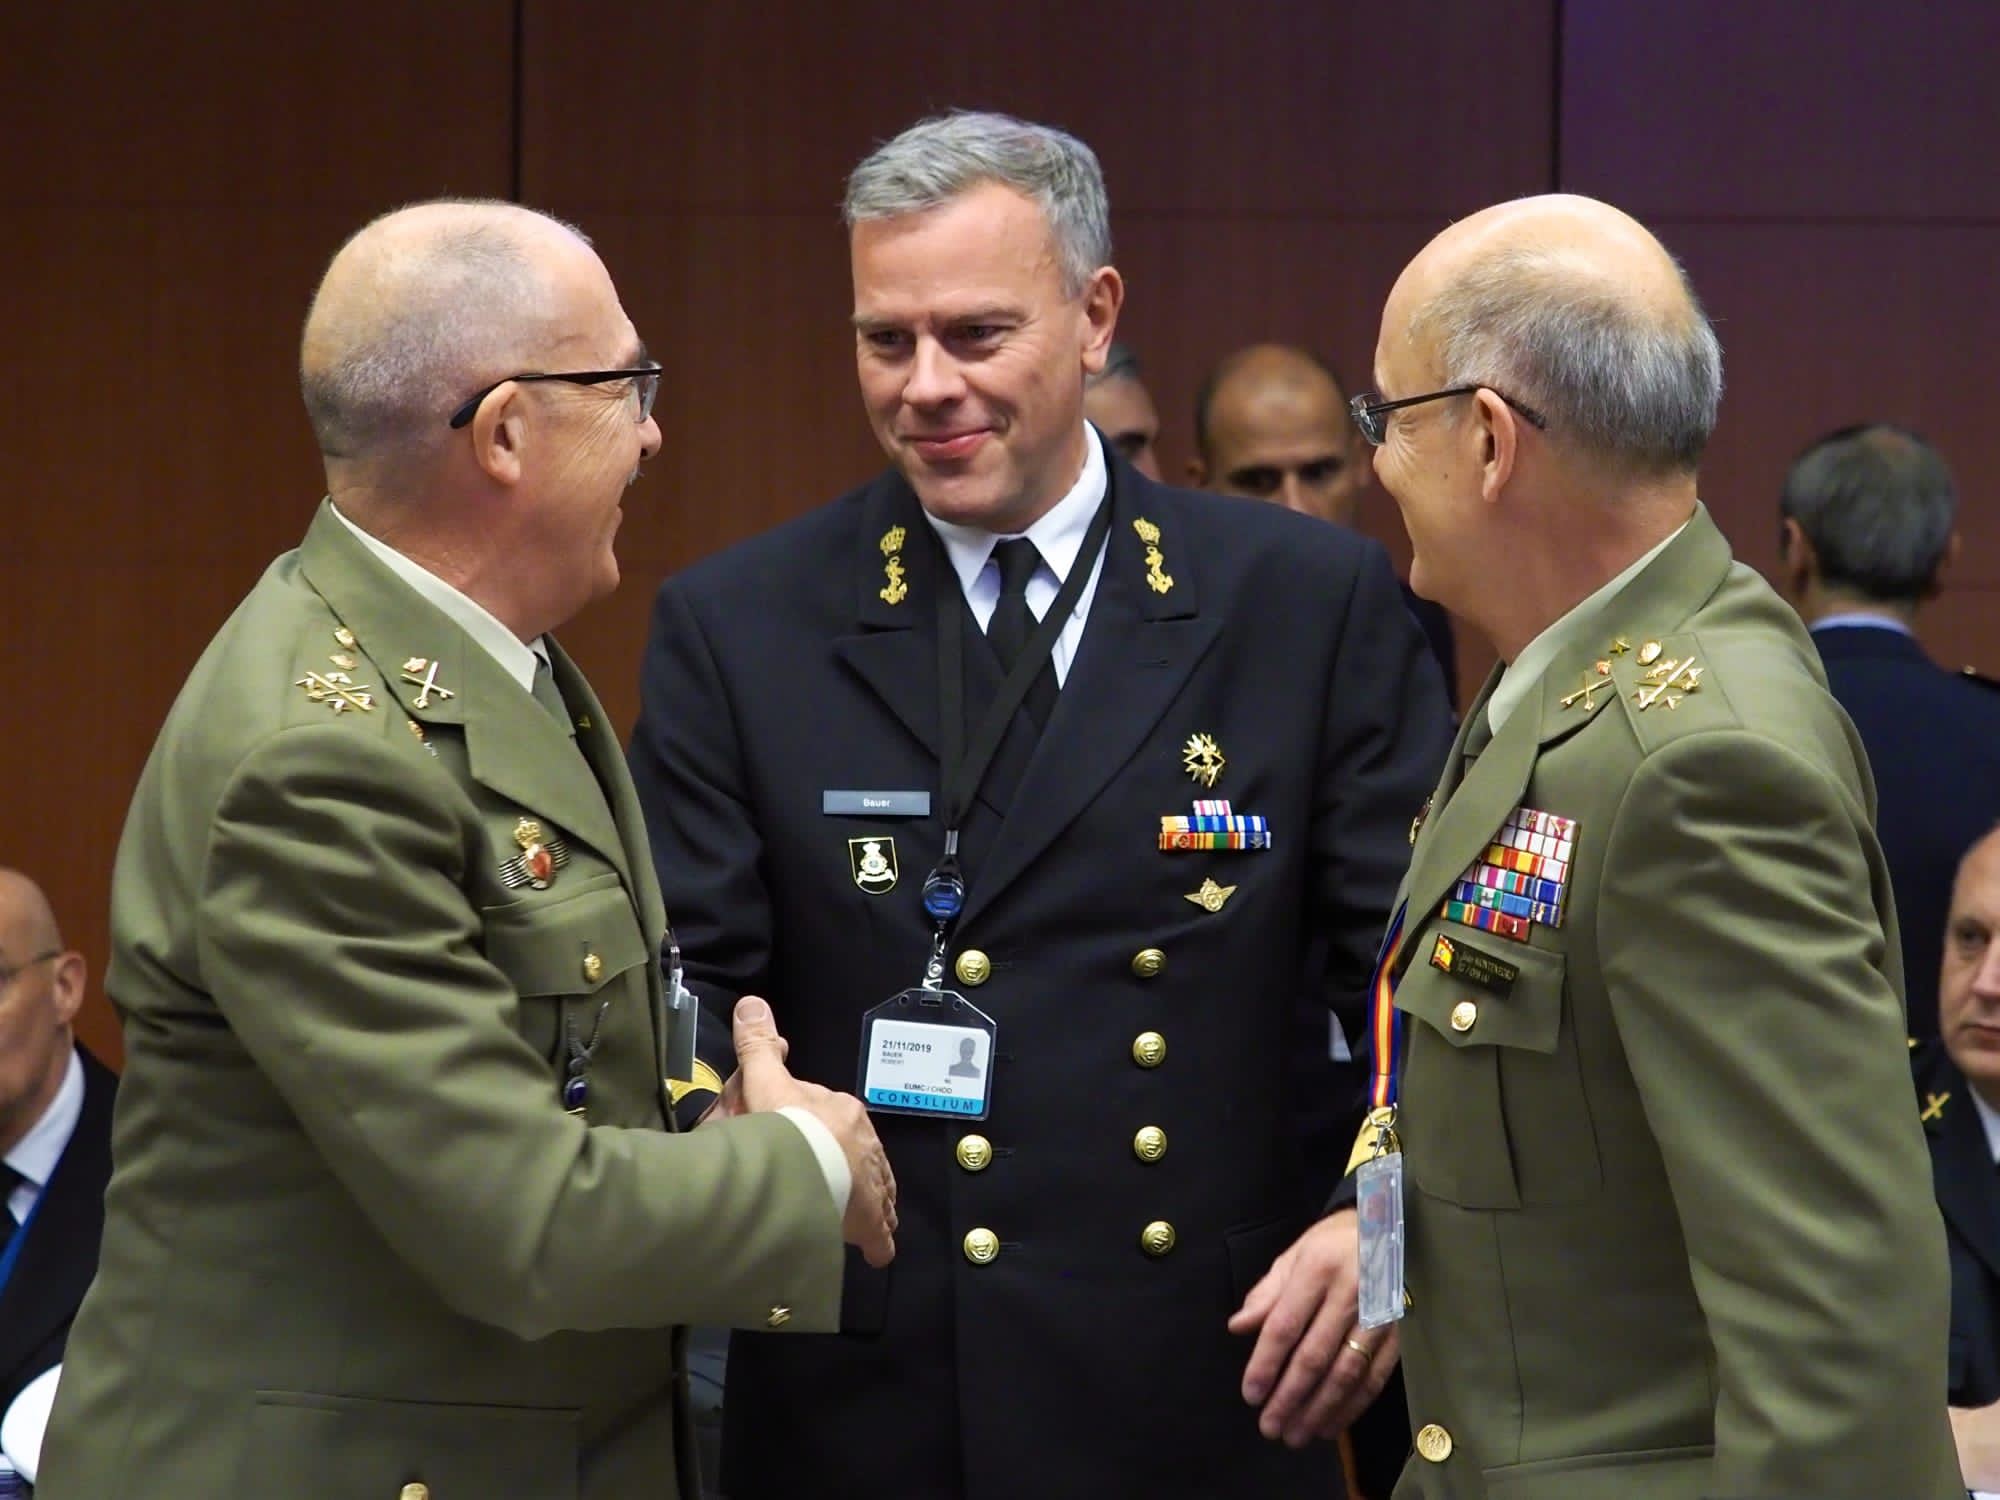 JEMAD takes part in the meeting of the European Union Military Committee